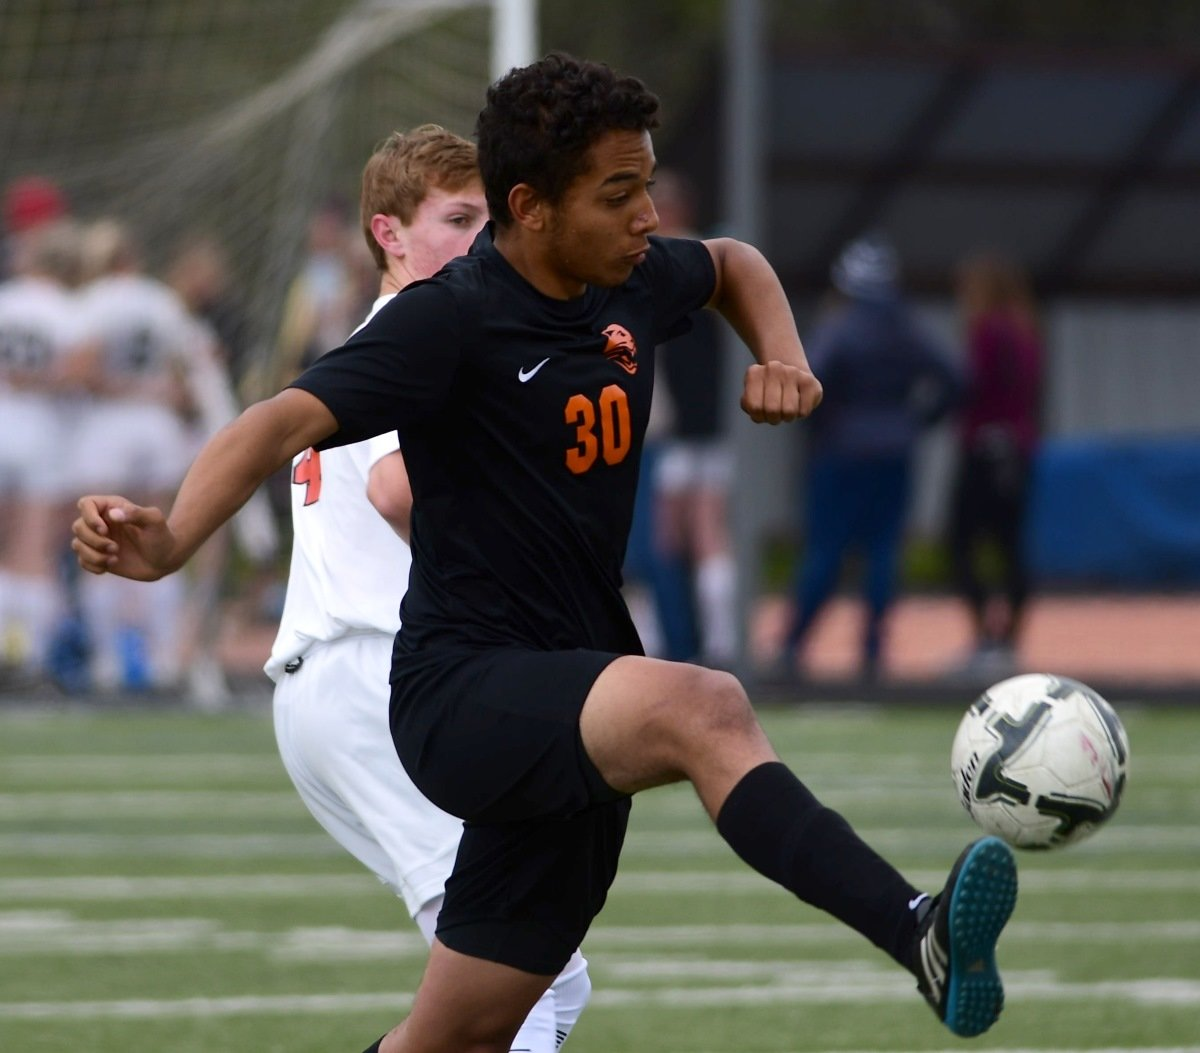 Panther forward Kaleb Brown boots the ball in the first half of the 3A State Championship game against Worland. The Warriors won 2-0 to secure their second straight state title.